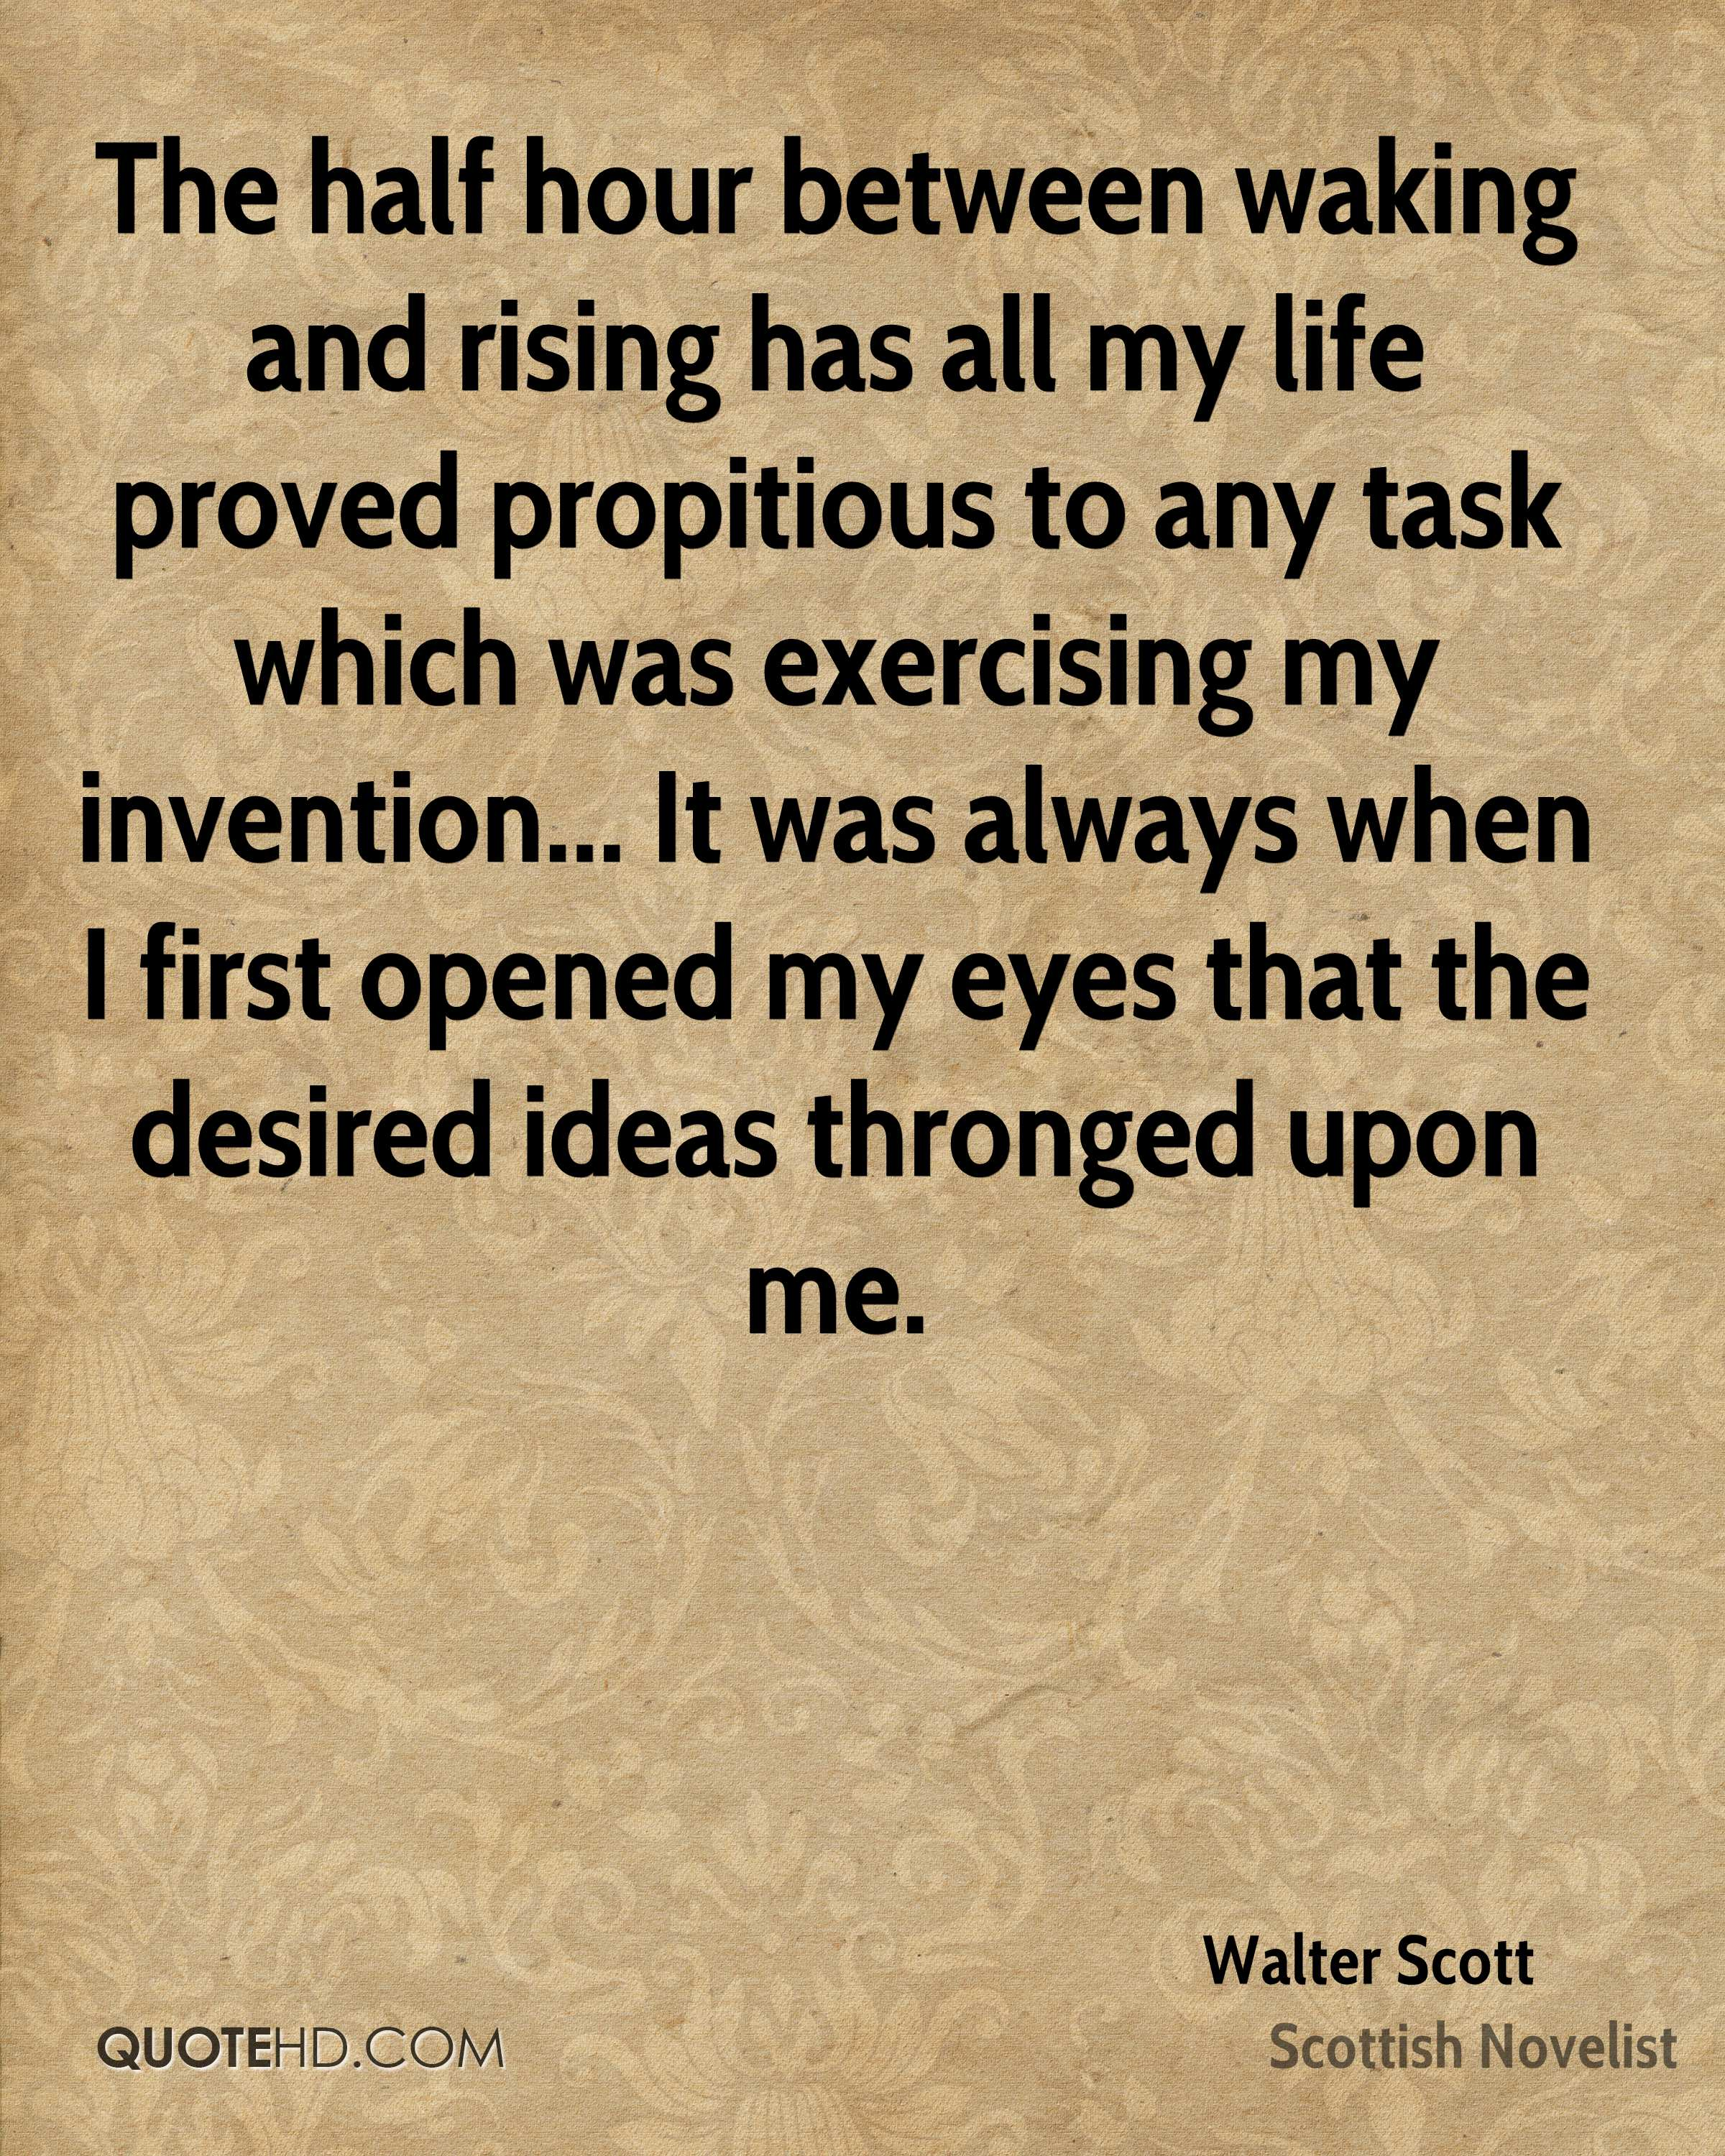 The half hour between waking and rising has all my life proved propitious to any task which was exercising my invention... It was always when I first opened my eyes that the desired ideas thronged upon me.